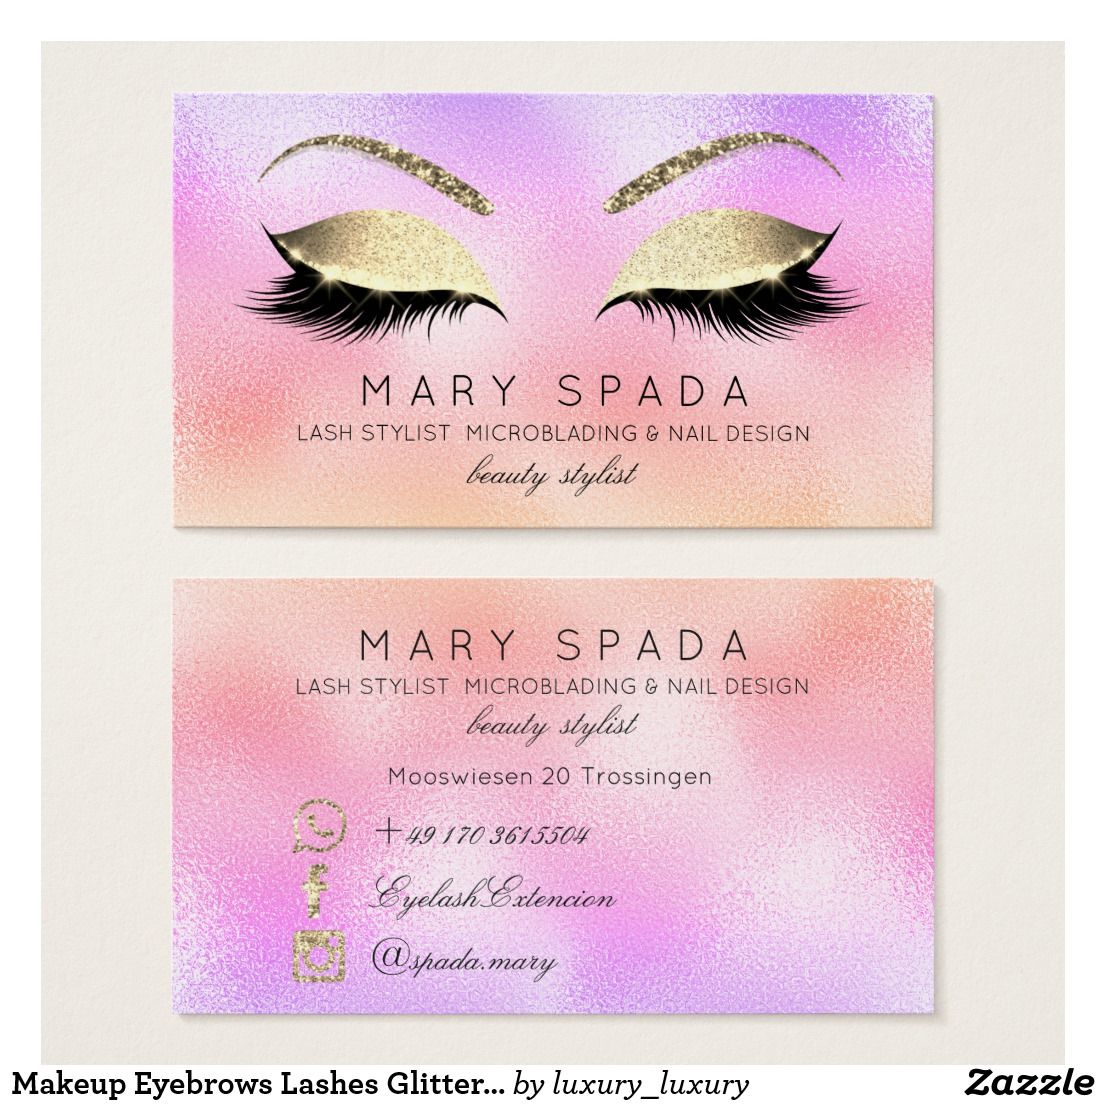 3a2a1686f34 Makeup Eyebrows Lashes Glitter Diamond Gold Pink Business Card ...